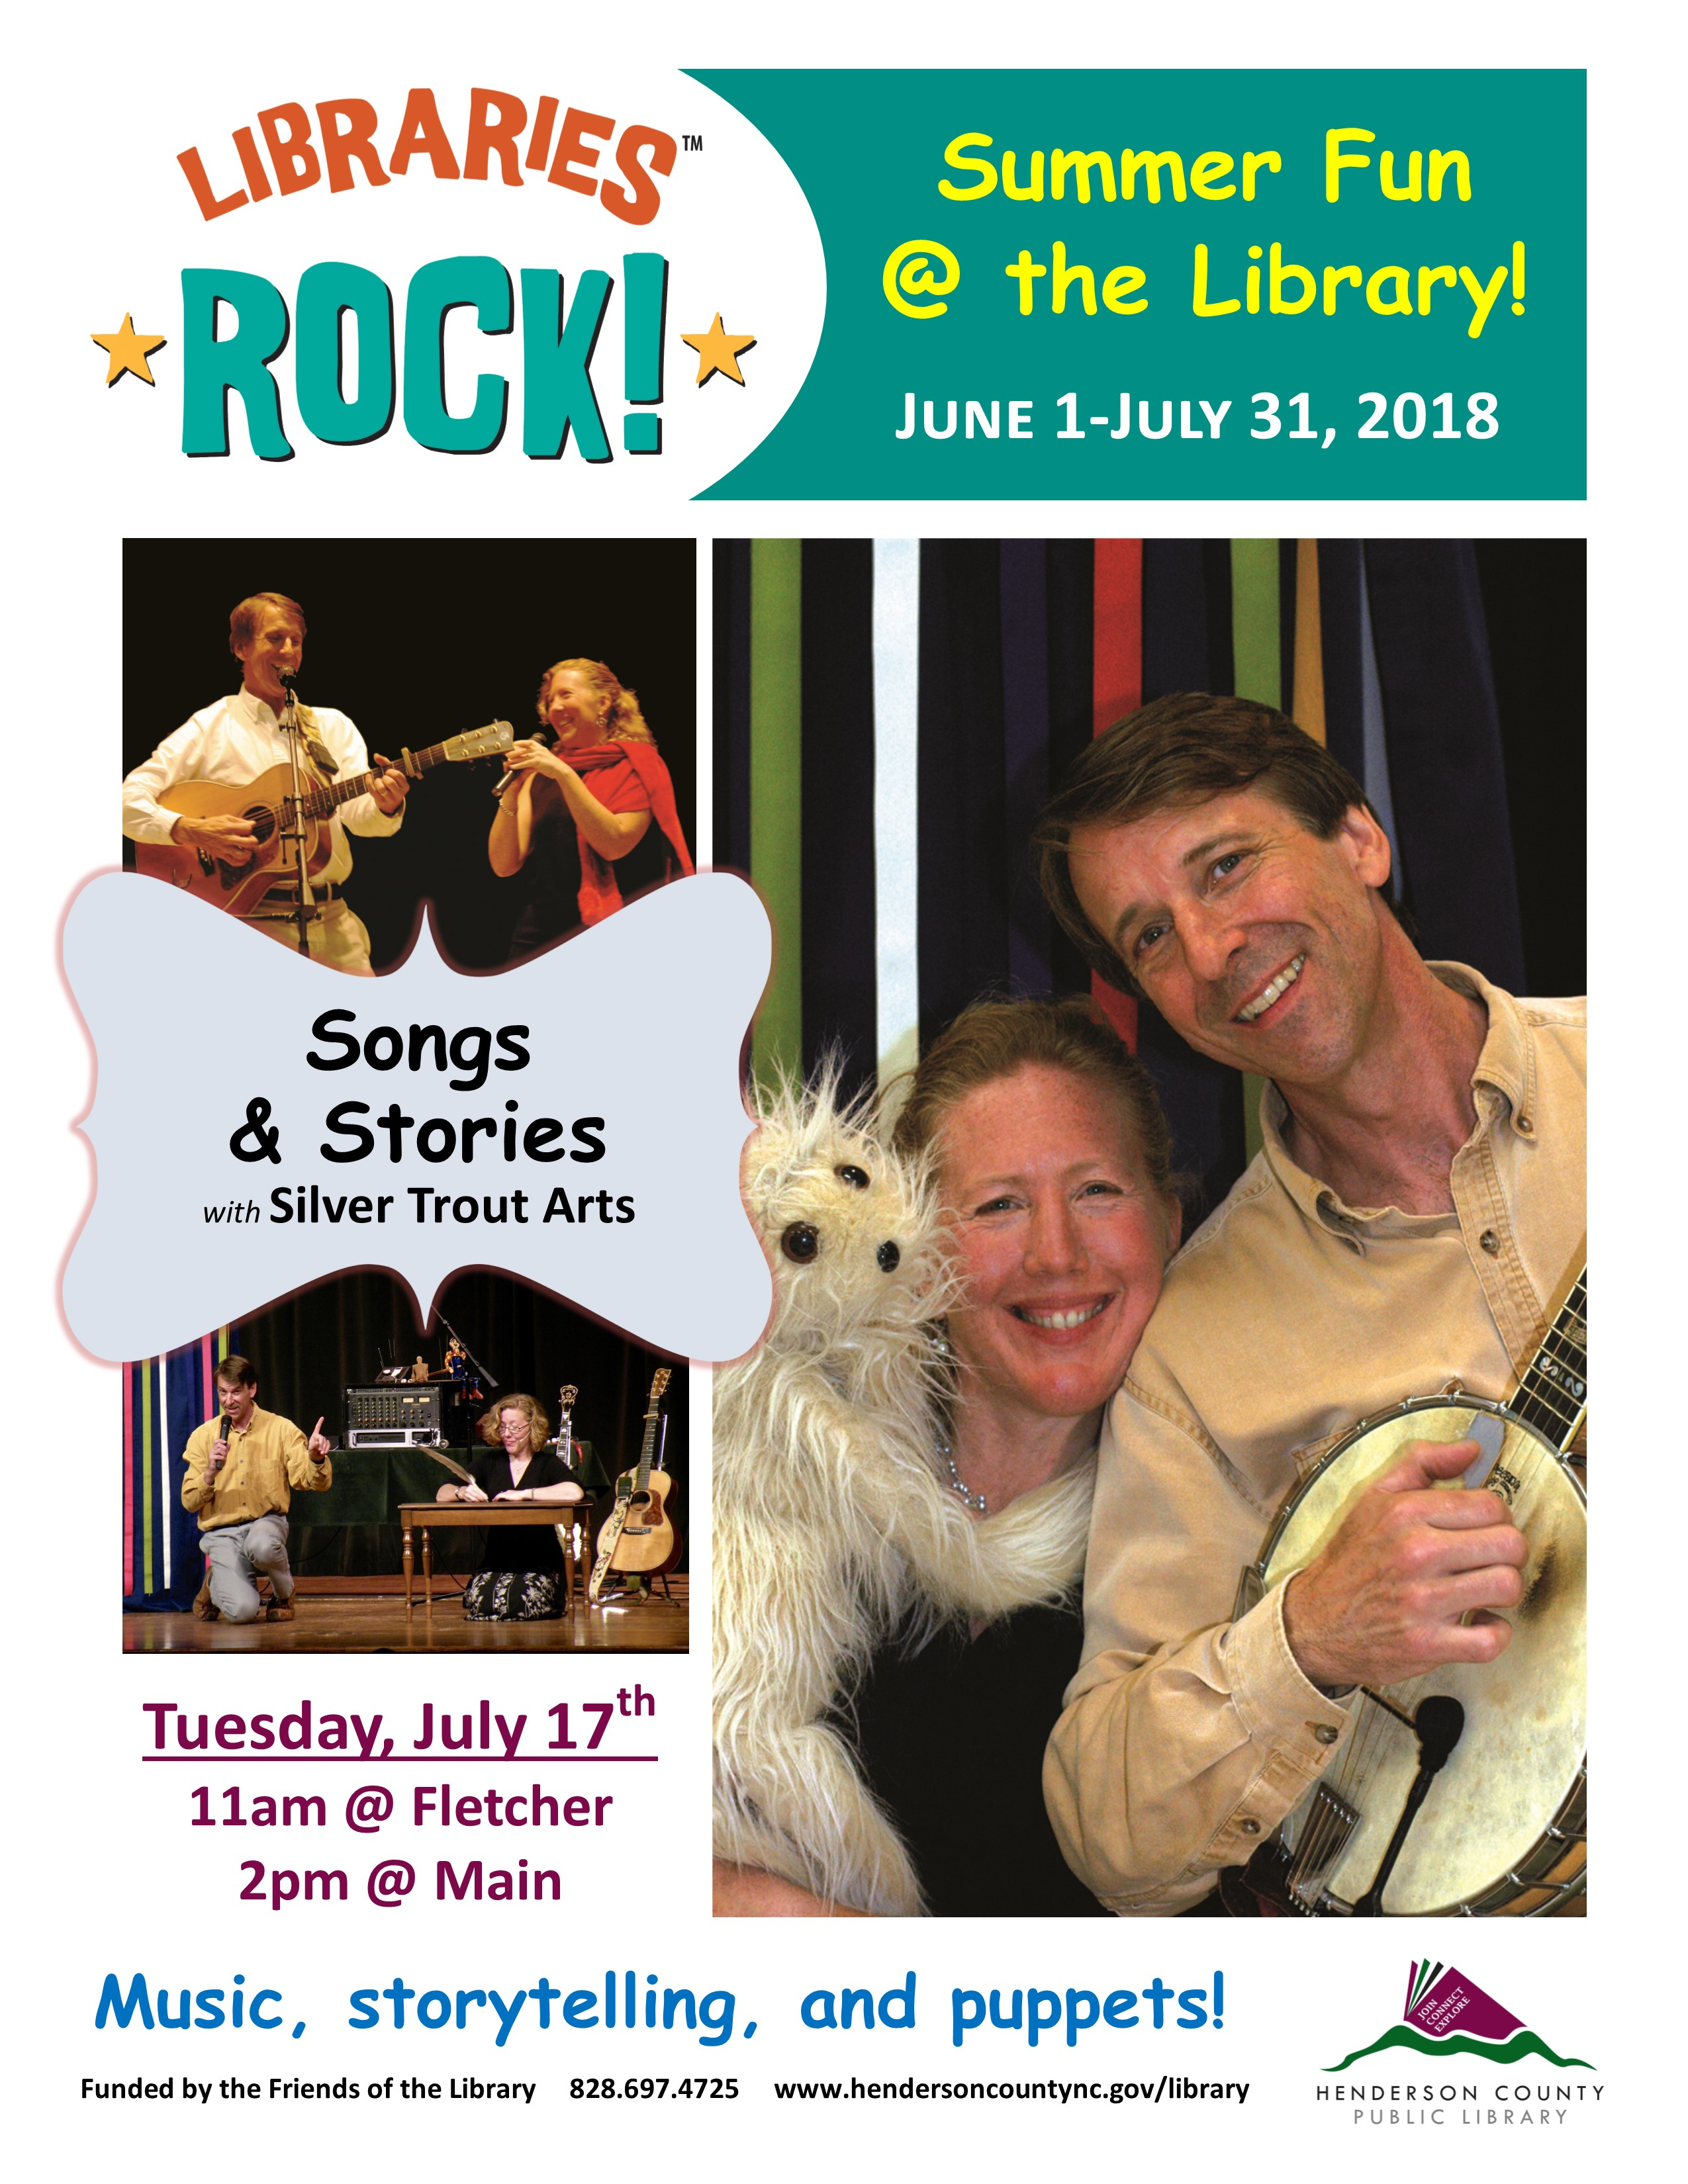 Songs and Stories with Silver Trout Arts